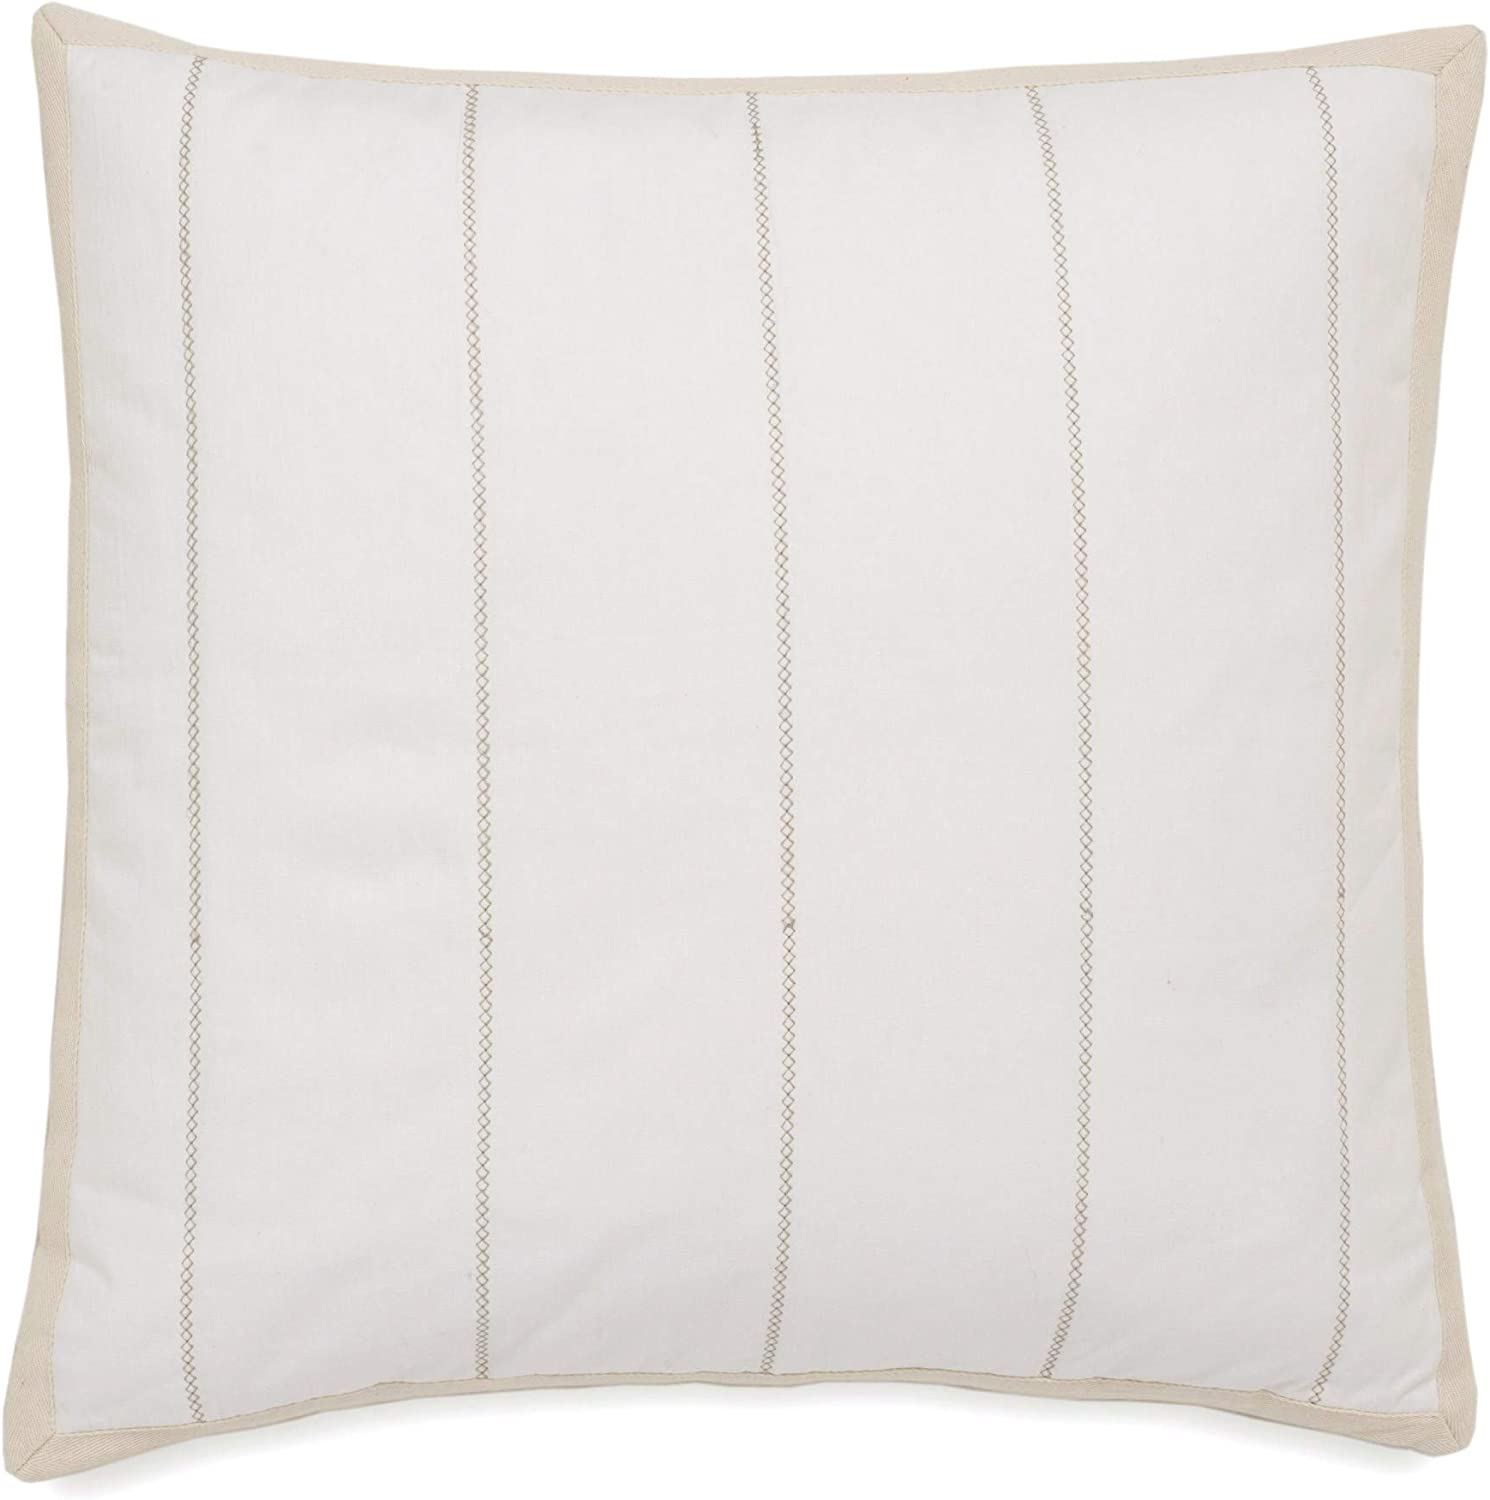 Southern Tide Home Southport Sham, European Square, Ivory